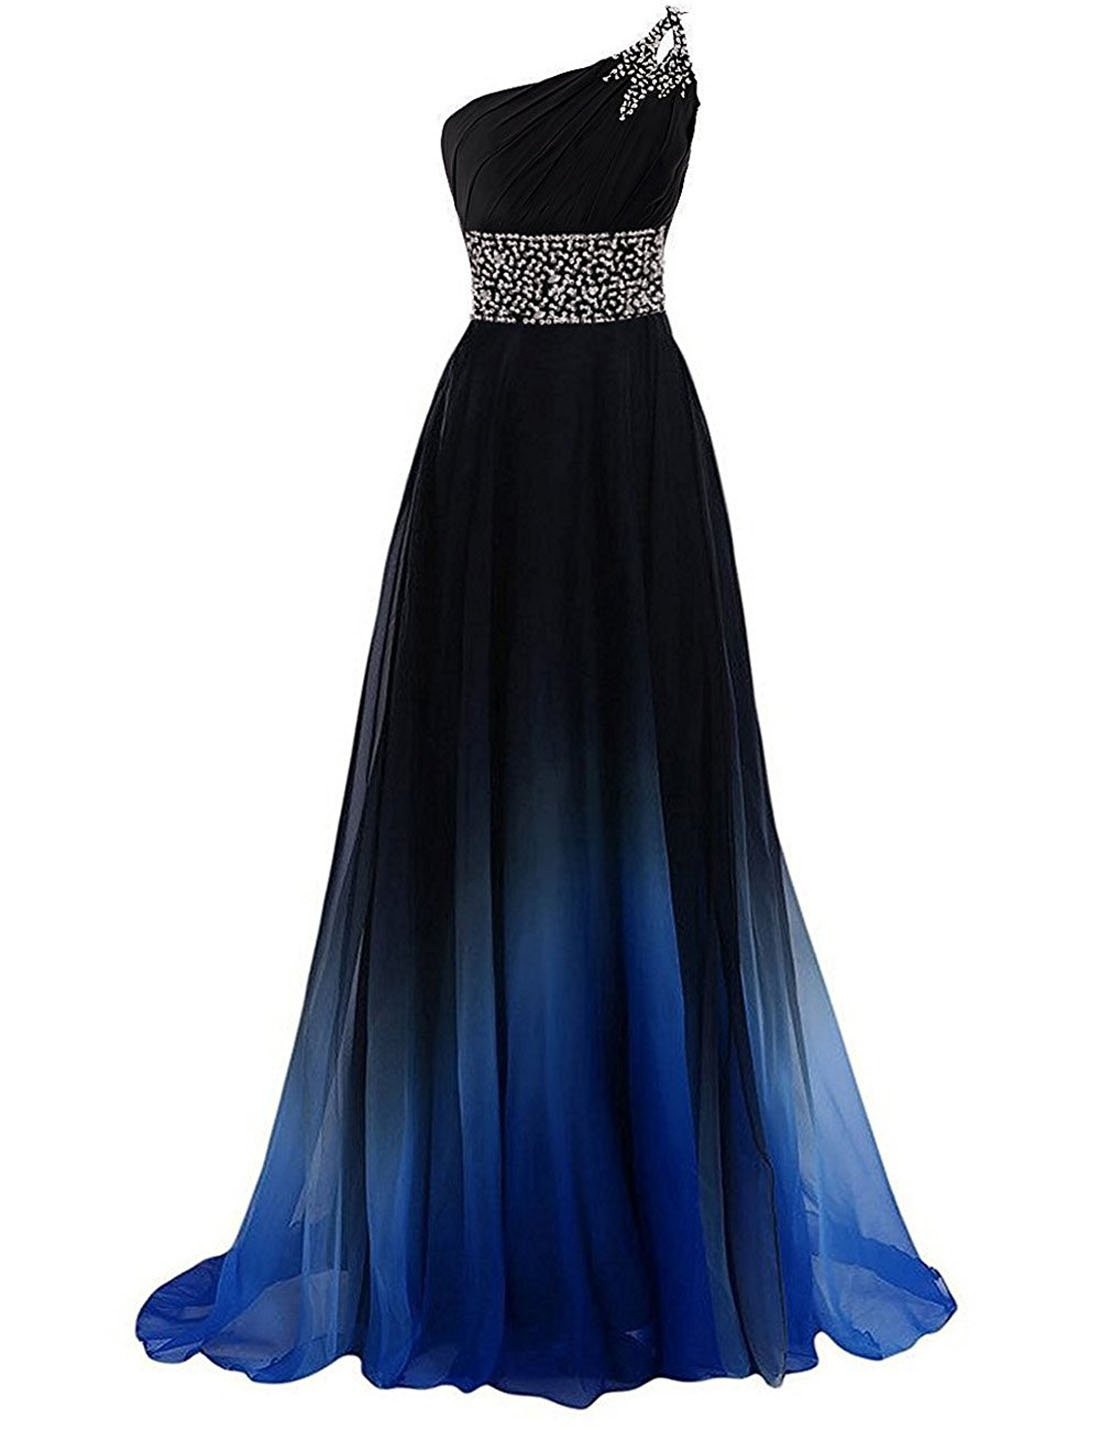 ZVOCY Gradient Evening Prom Dress Long